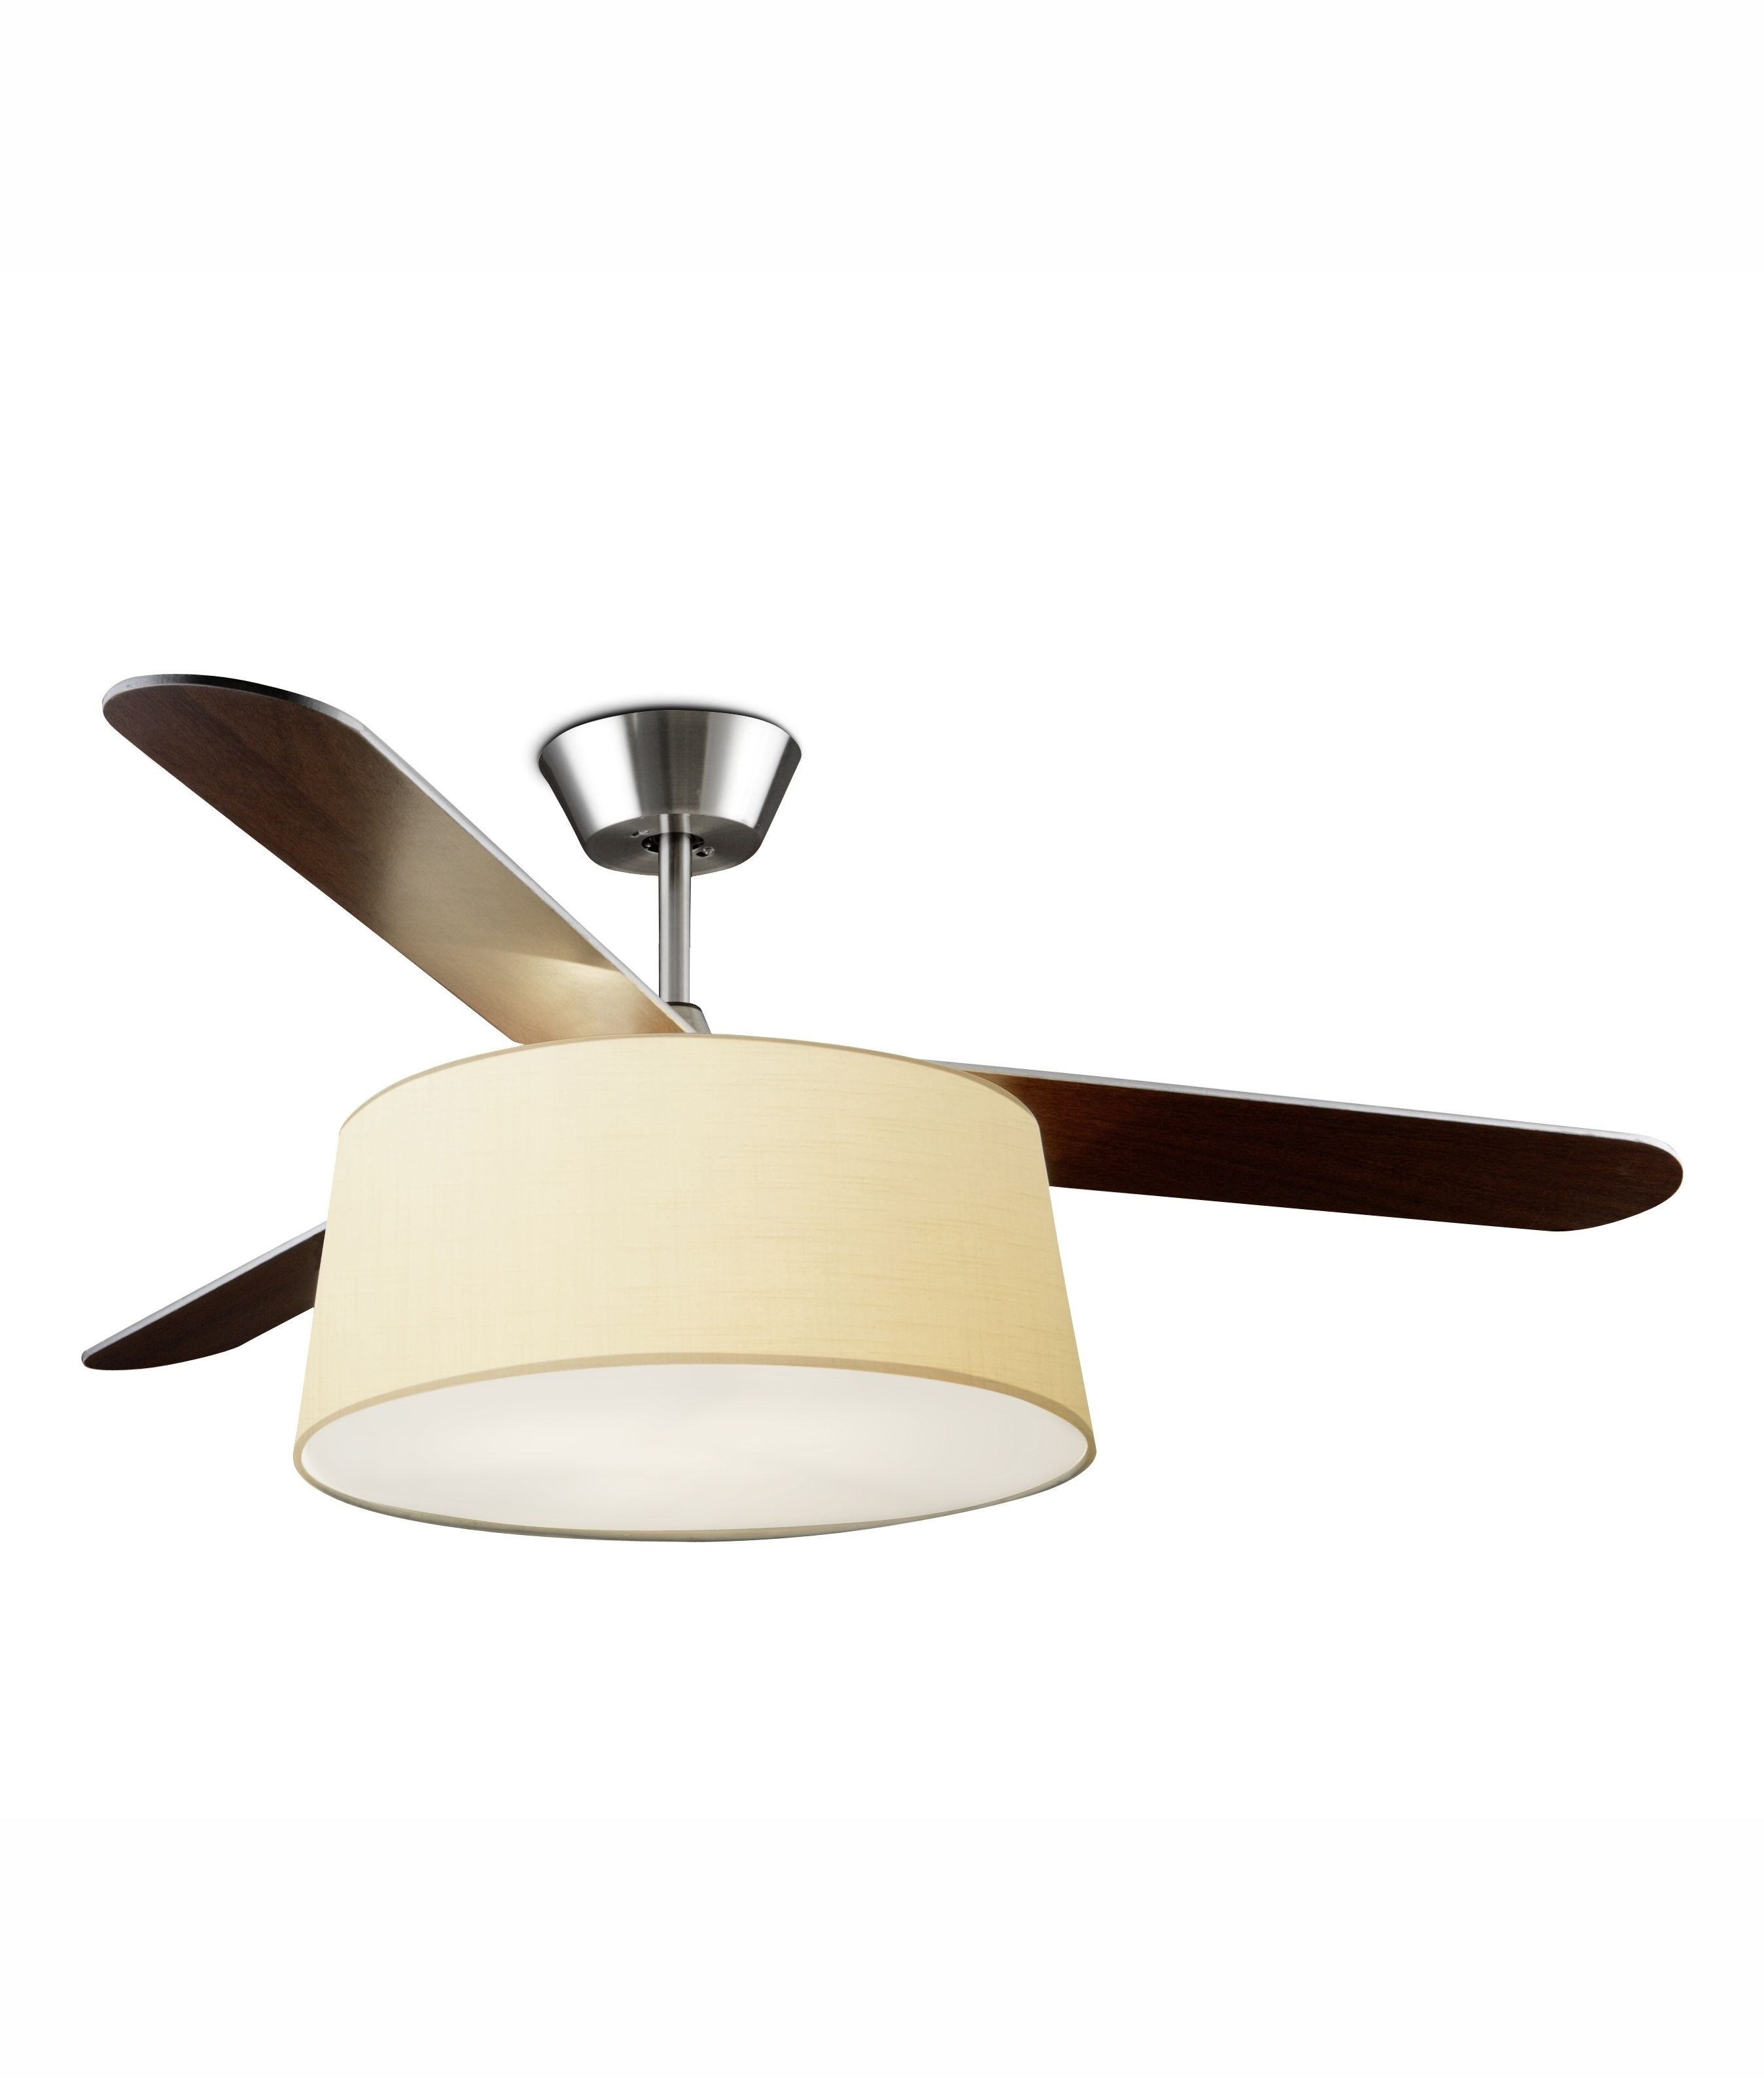 Modern Ceiling Fan With Drum Light Shade Ceiling Fan With Light Ceiling Fan Modern Ceiling Fan